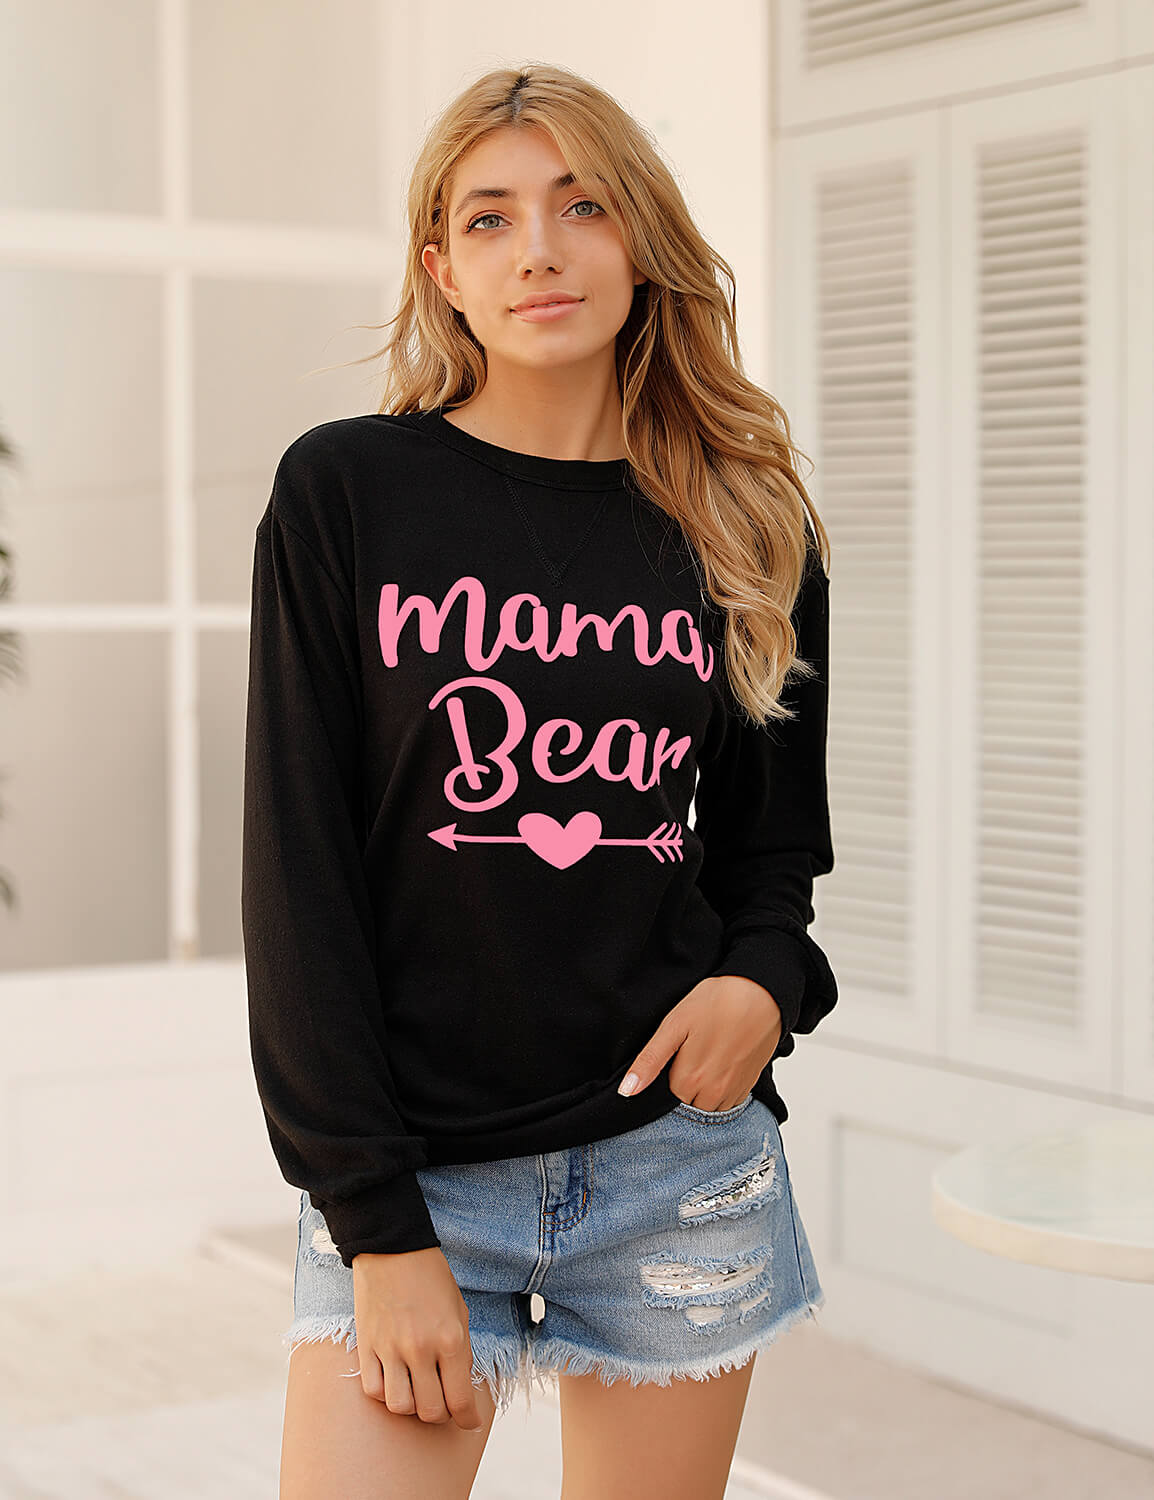 Blooming Jelly_Mama Bear Loose Sweatshirt_Letter Print Black_304019_02_Mom Style Casual Outfits_Tops_Sweatshirt